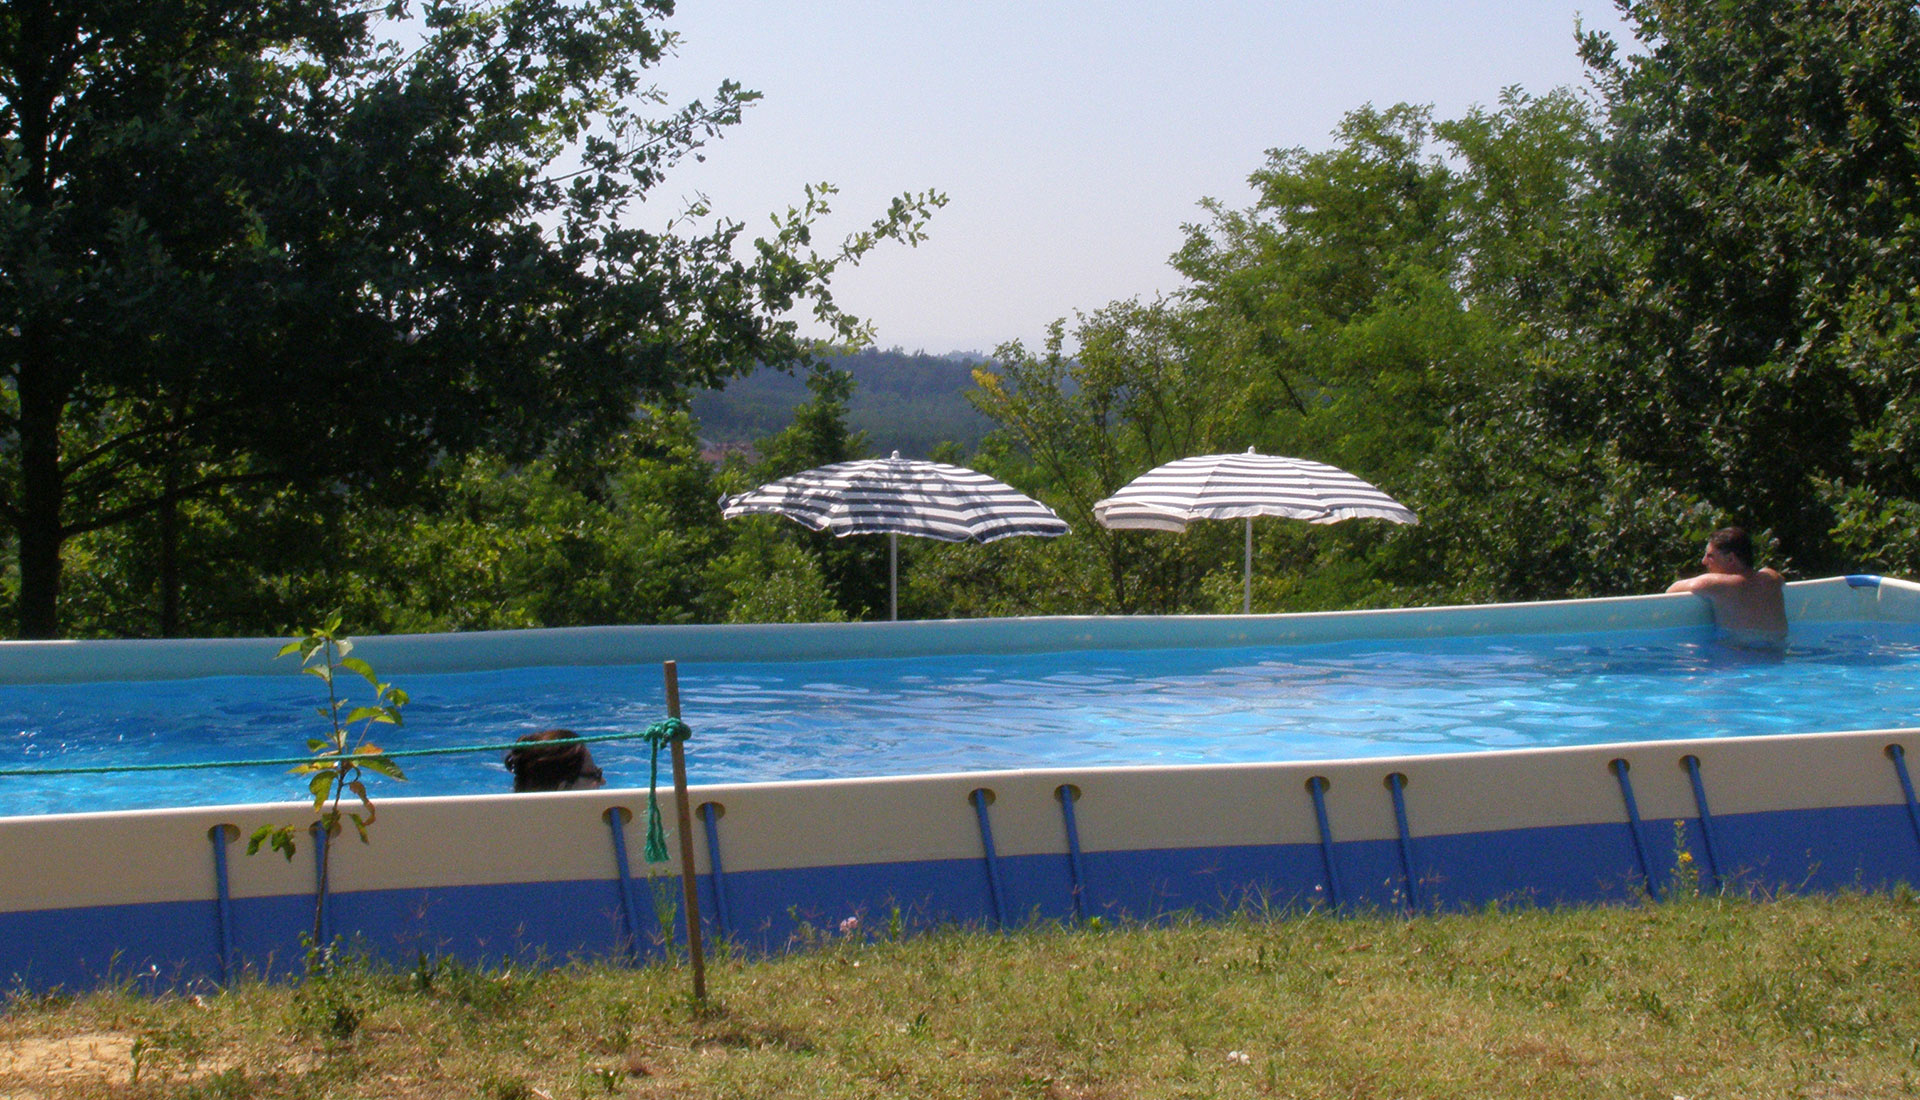 Cool off with a swim in the pool … surrounded by nature